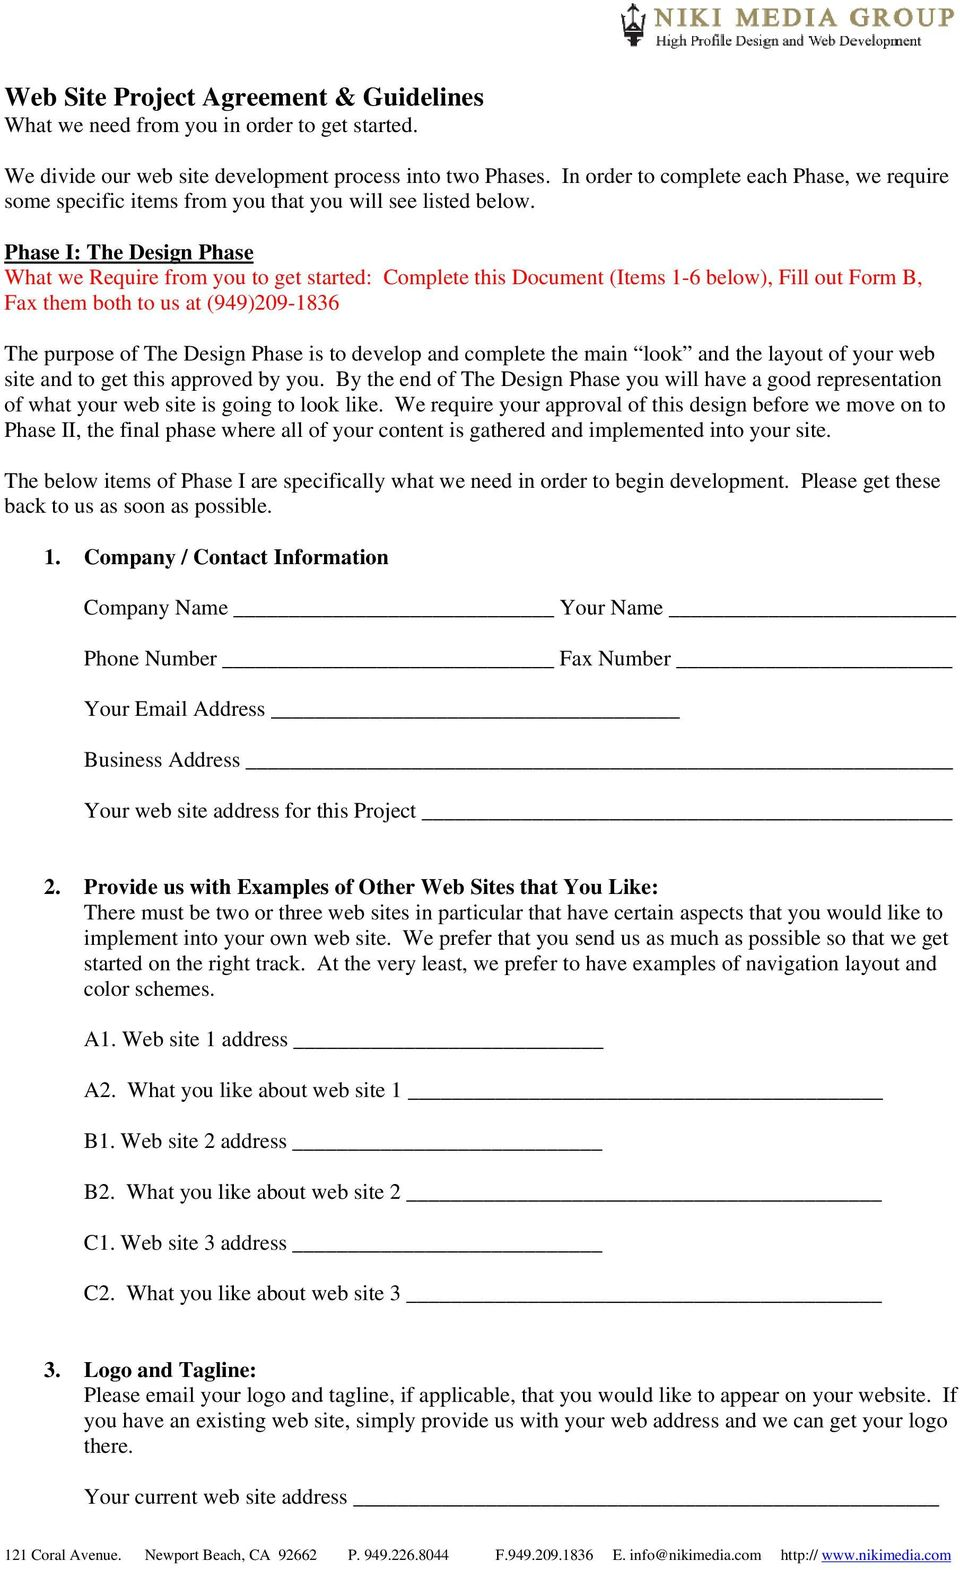 Phase I: The Design Phase What we Require from you to get started: Complete this Document (Items 1-6 below), Fill out Form B, Fax them both to us at (949)209-1836 The purpose of The Design Phase is